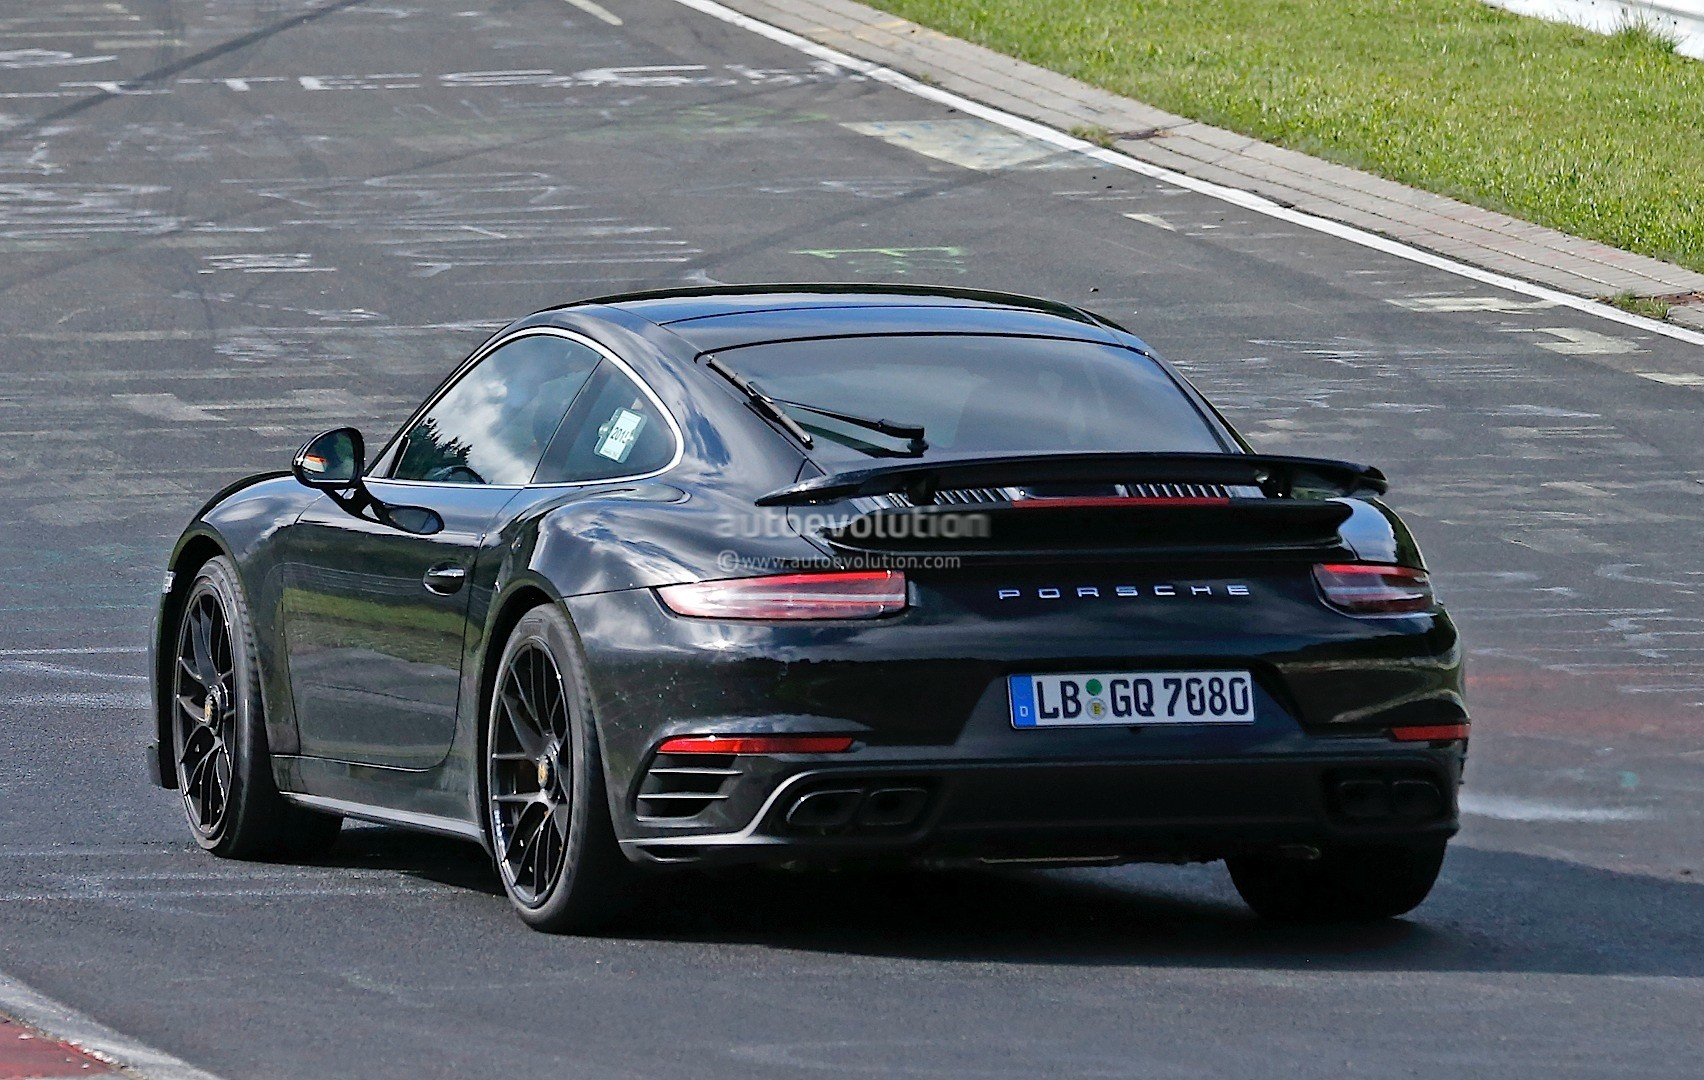 2016 porsche 911 facelift interior revealed in fresh spyshots boost control button new display